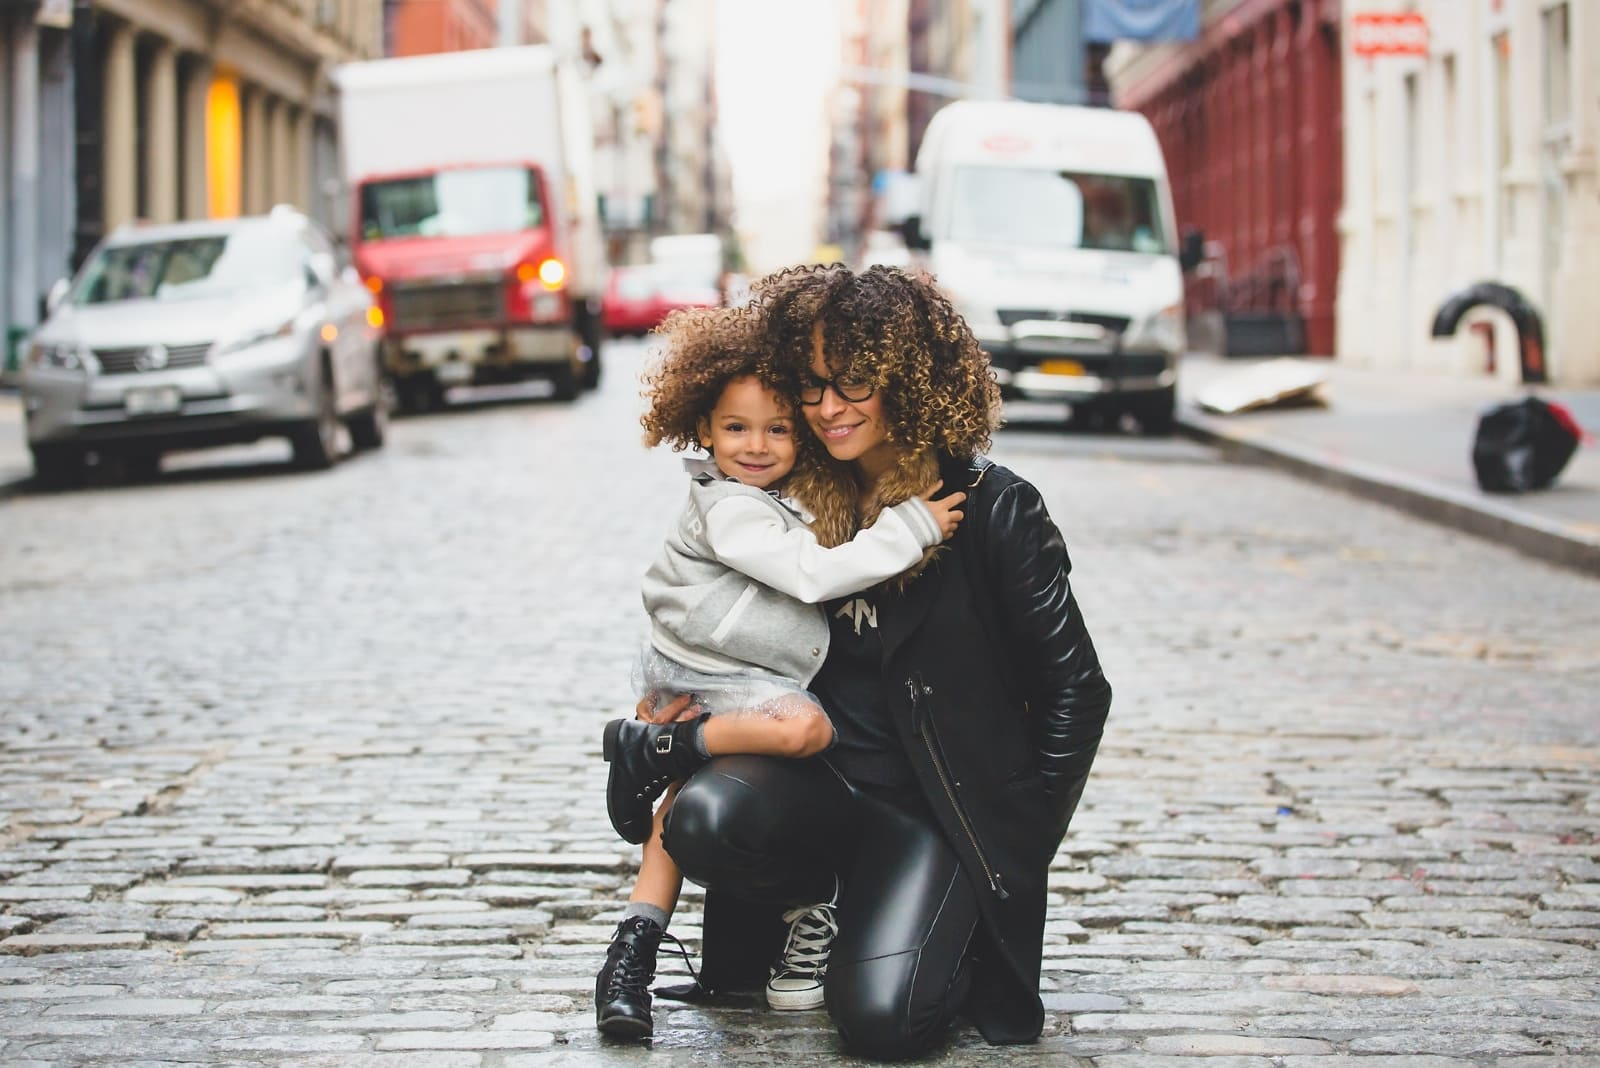 woman with curly hair holding girl on the street